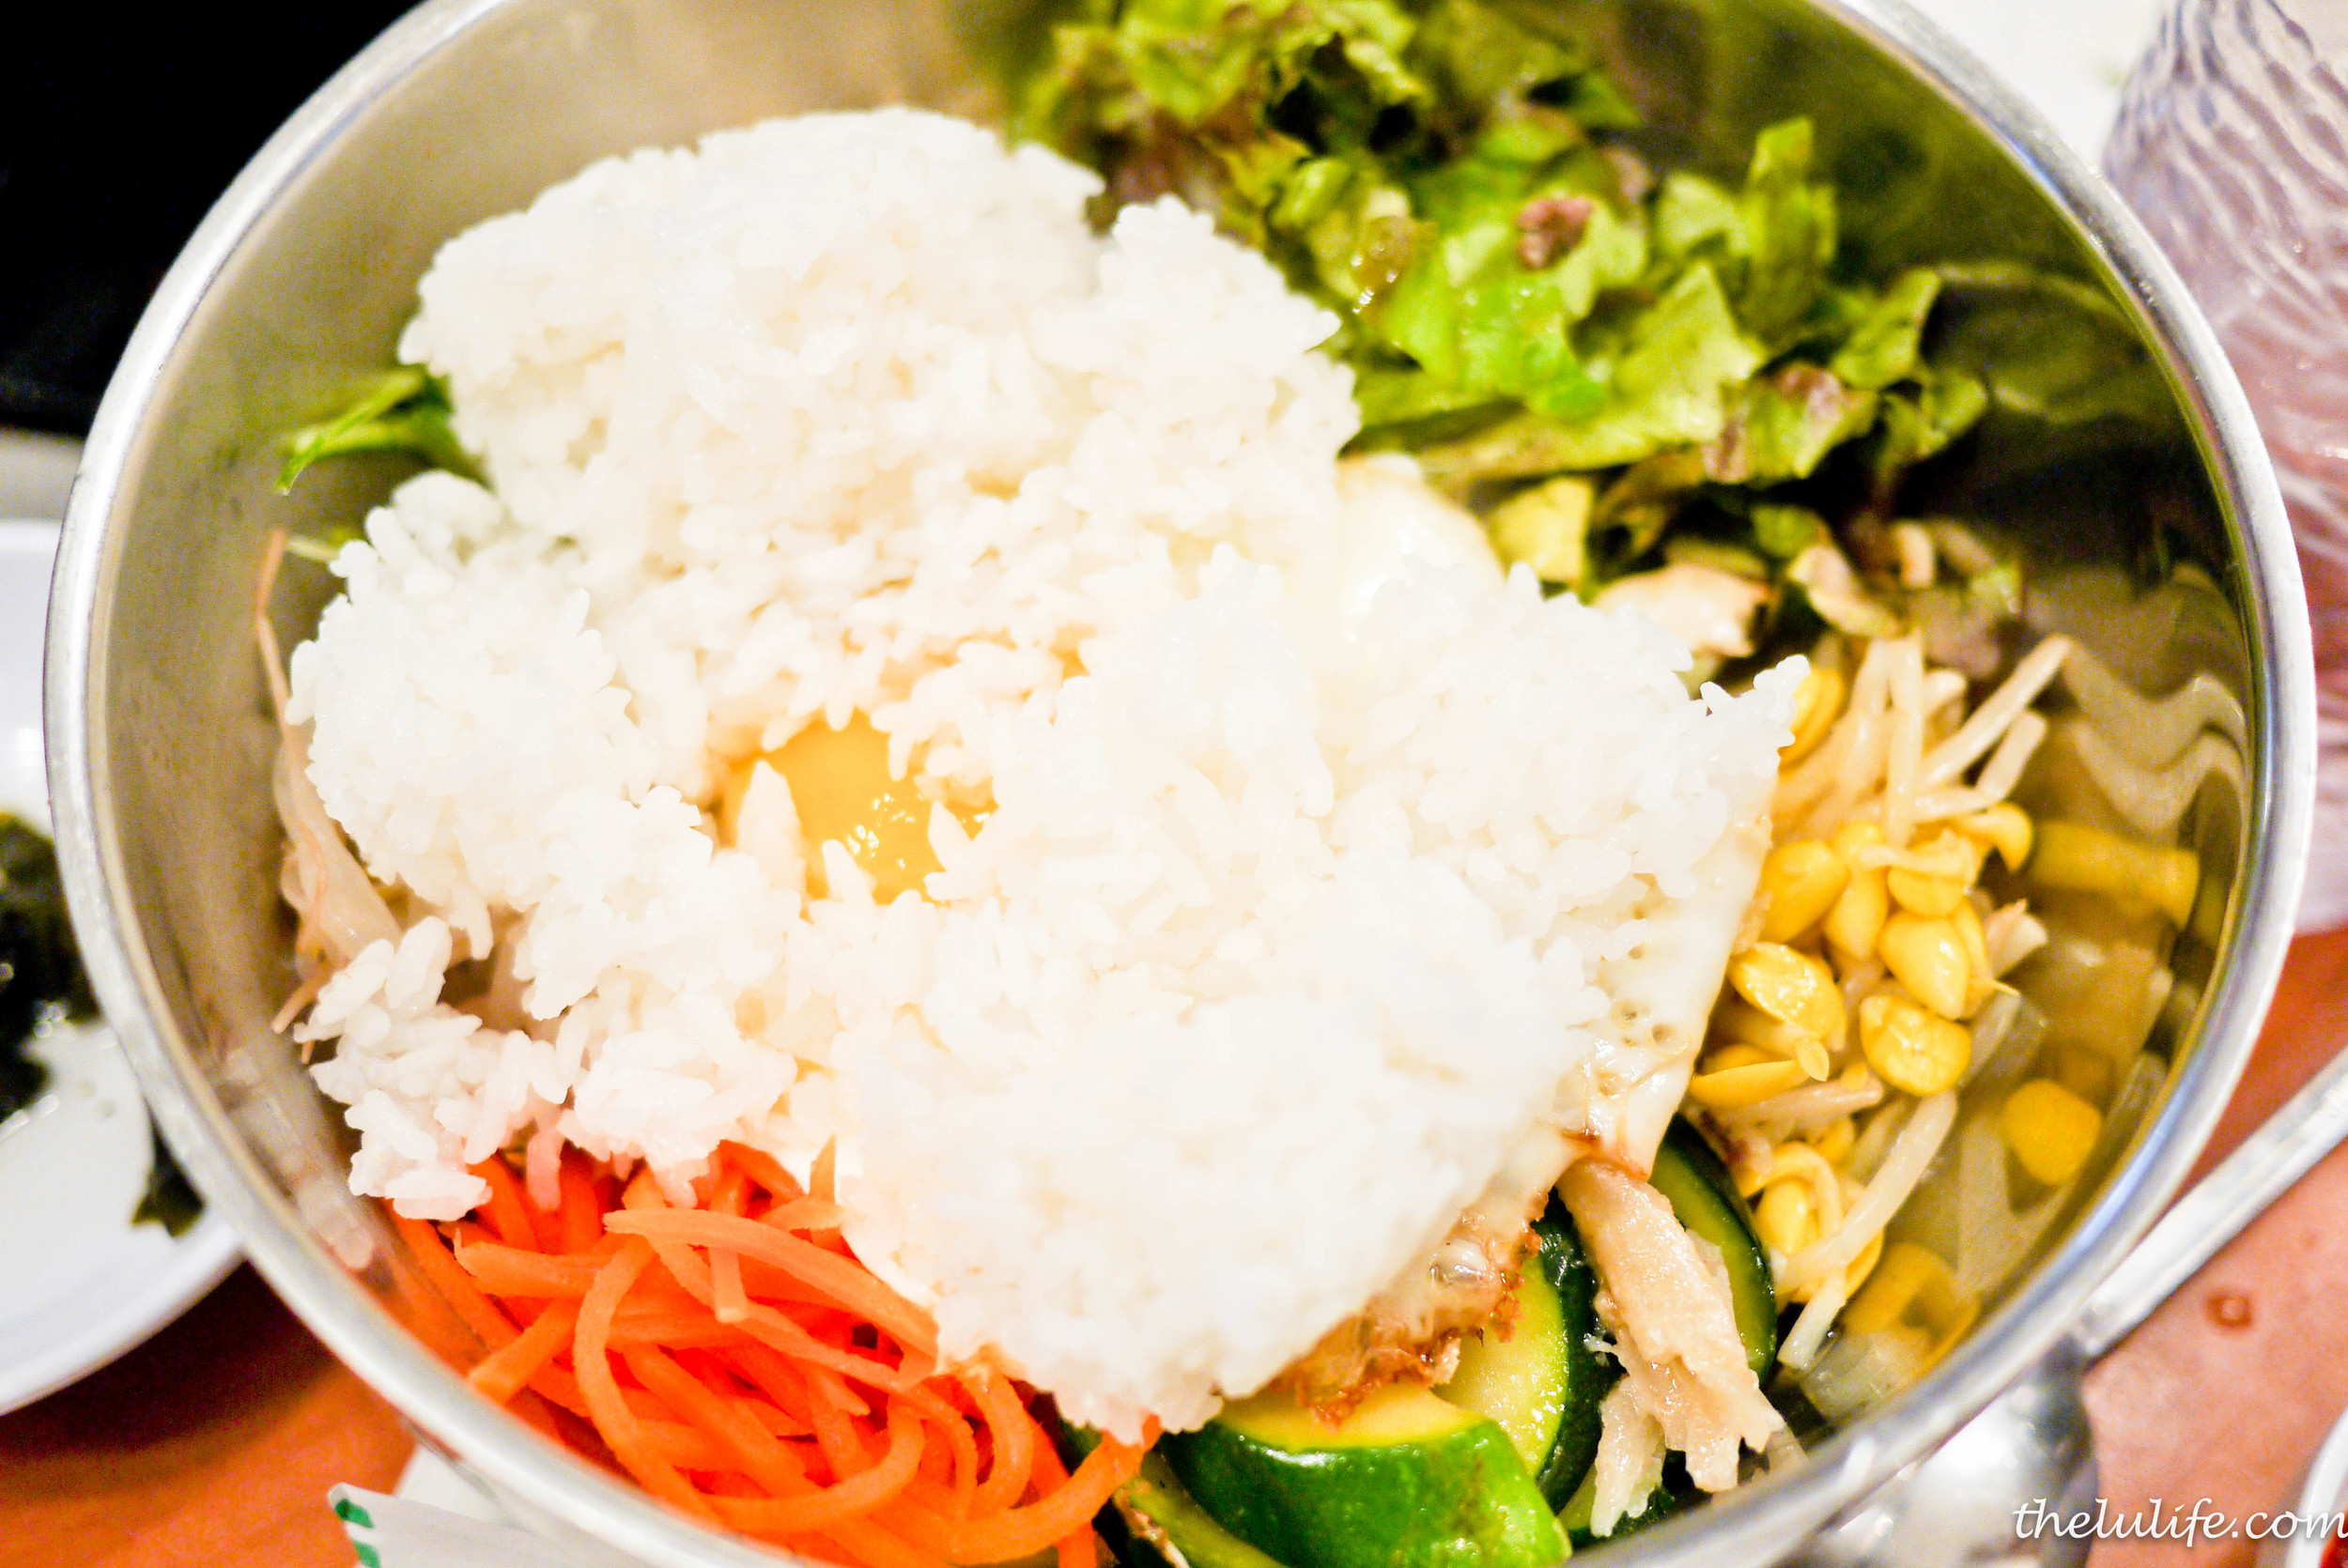 BiBimBap - steamed rice mixed with beef, assorted vegetables, fried egg and side of hot sauce